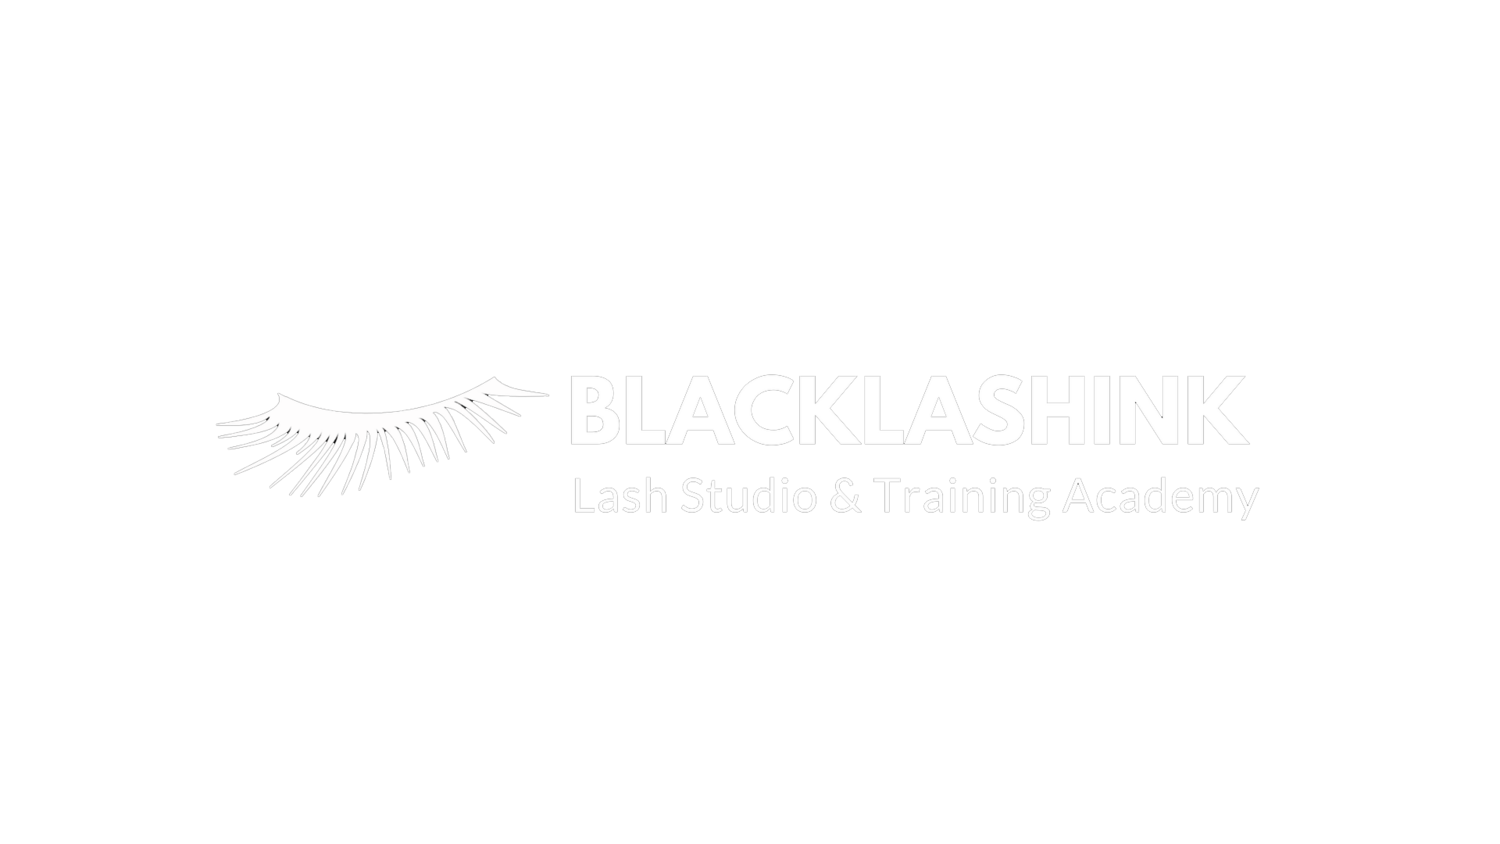 Blacklashink